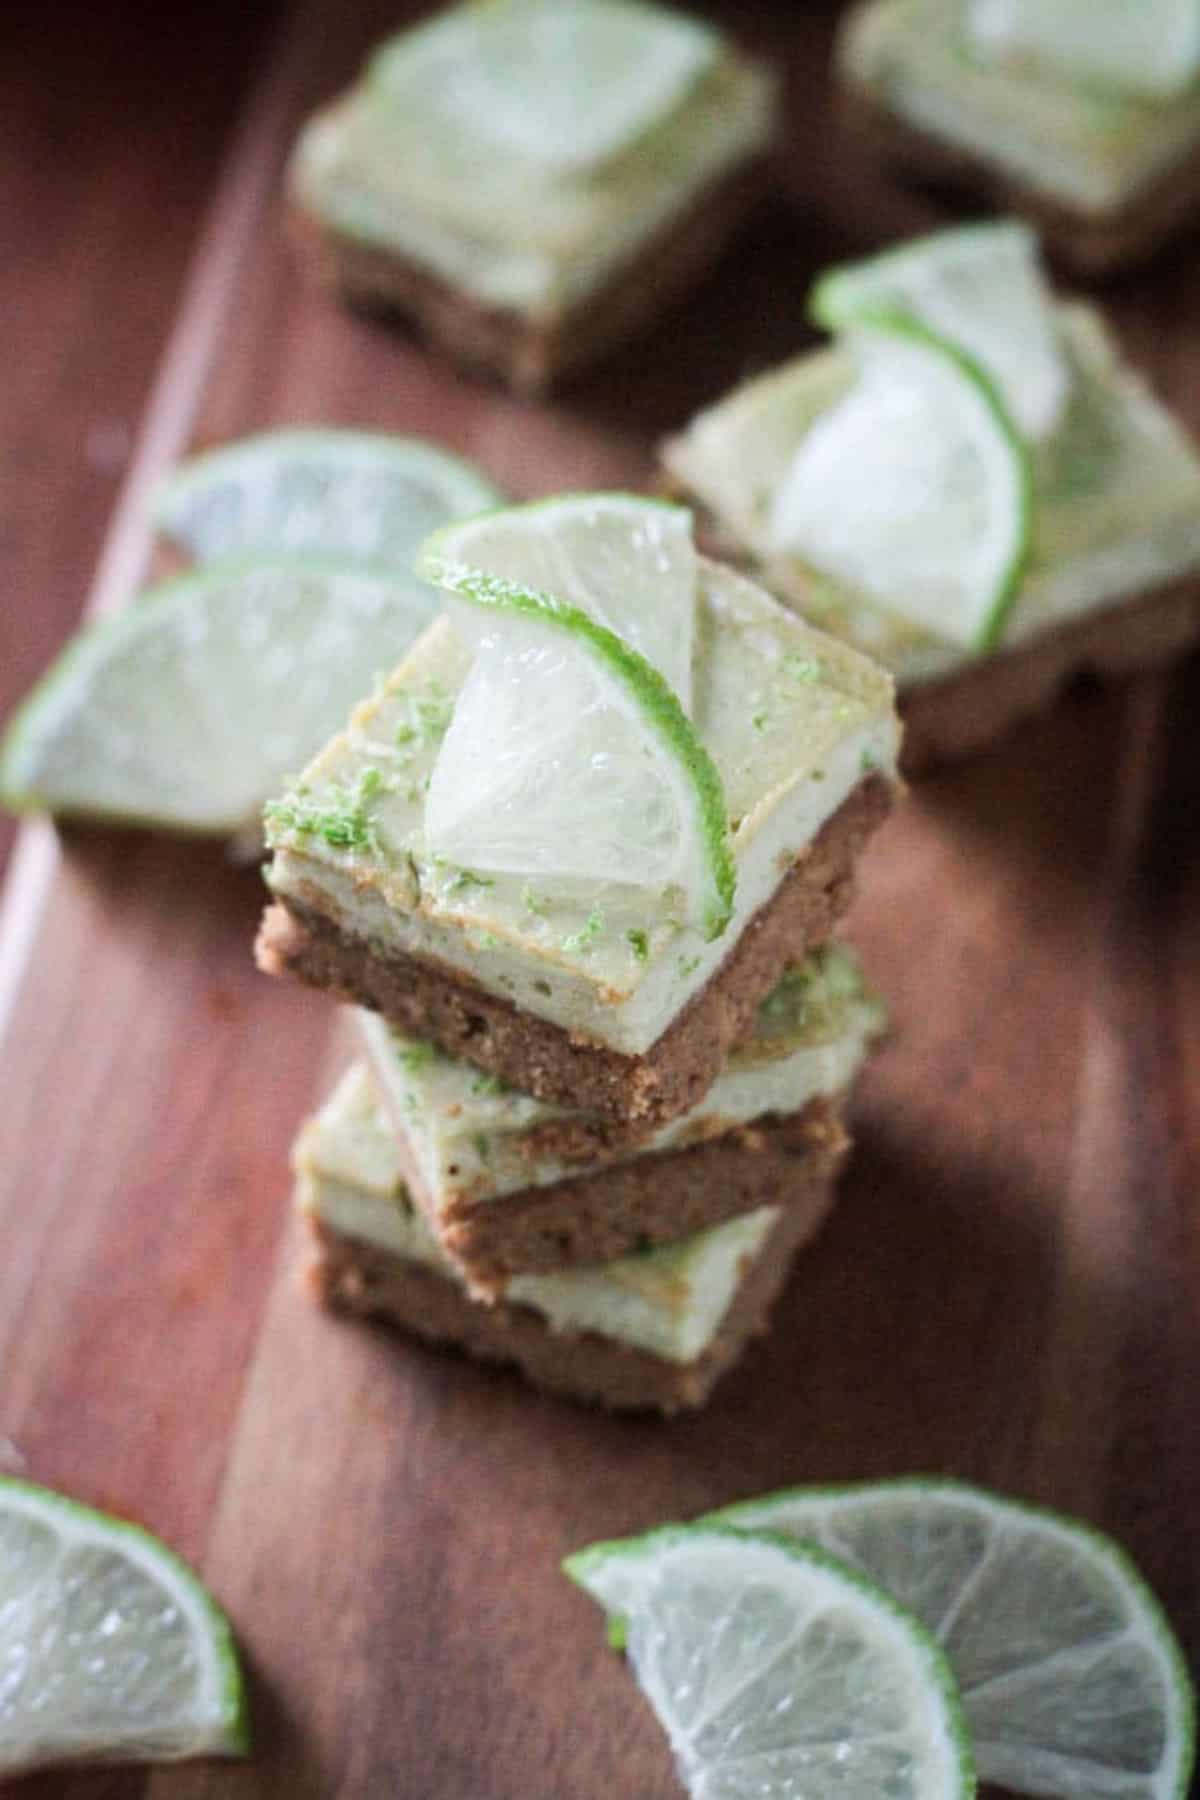 Stack of 3 vegan lime bars topped with a twisted lime wedge.